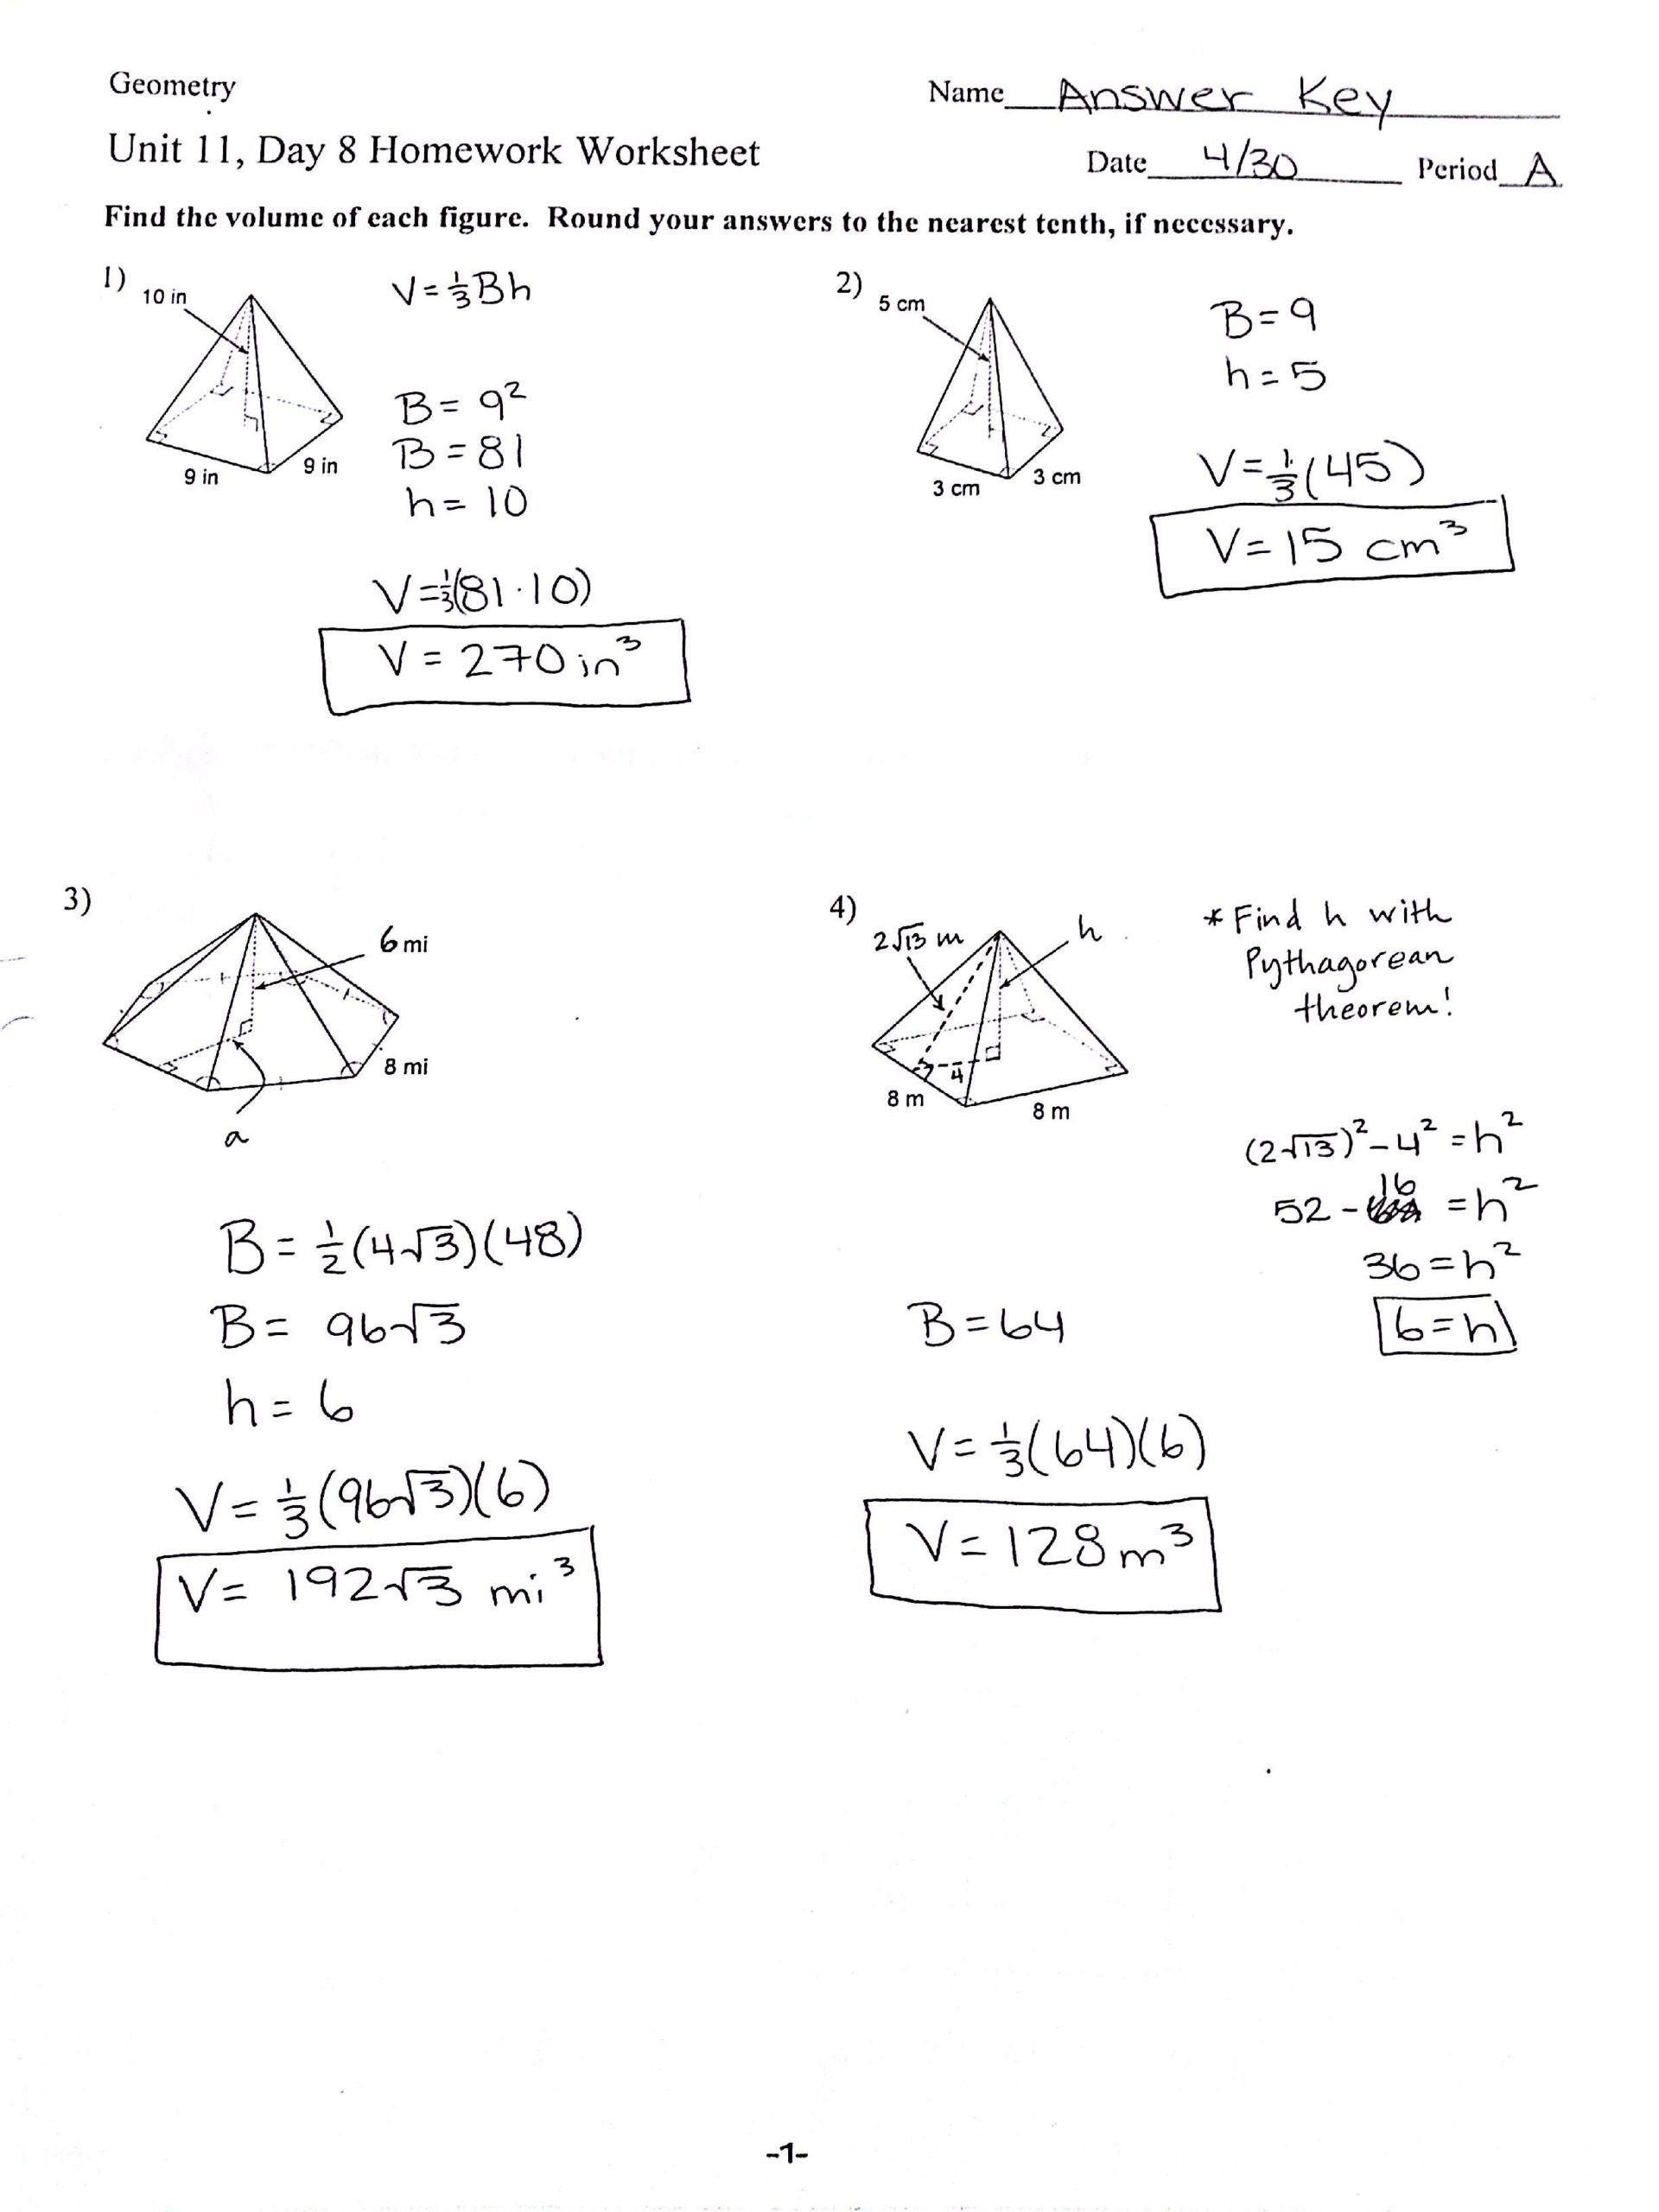 Scale Factor Worksheet 7th Grade Free Printable Math Worksheets for 7th Grade with Answers